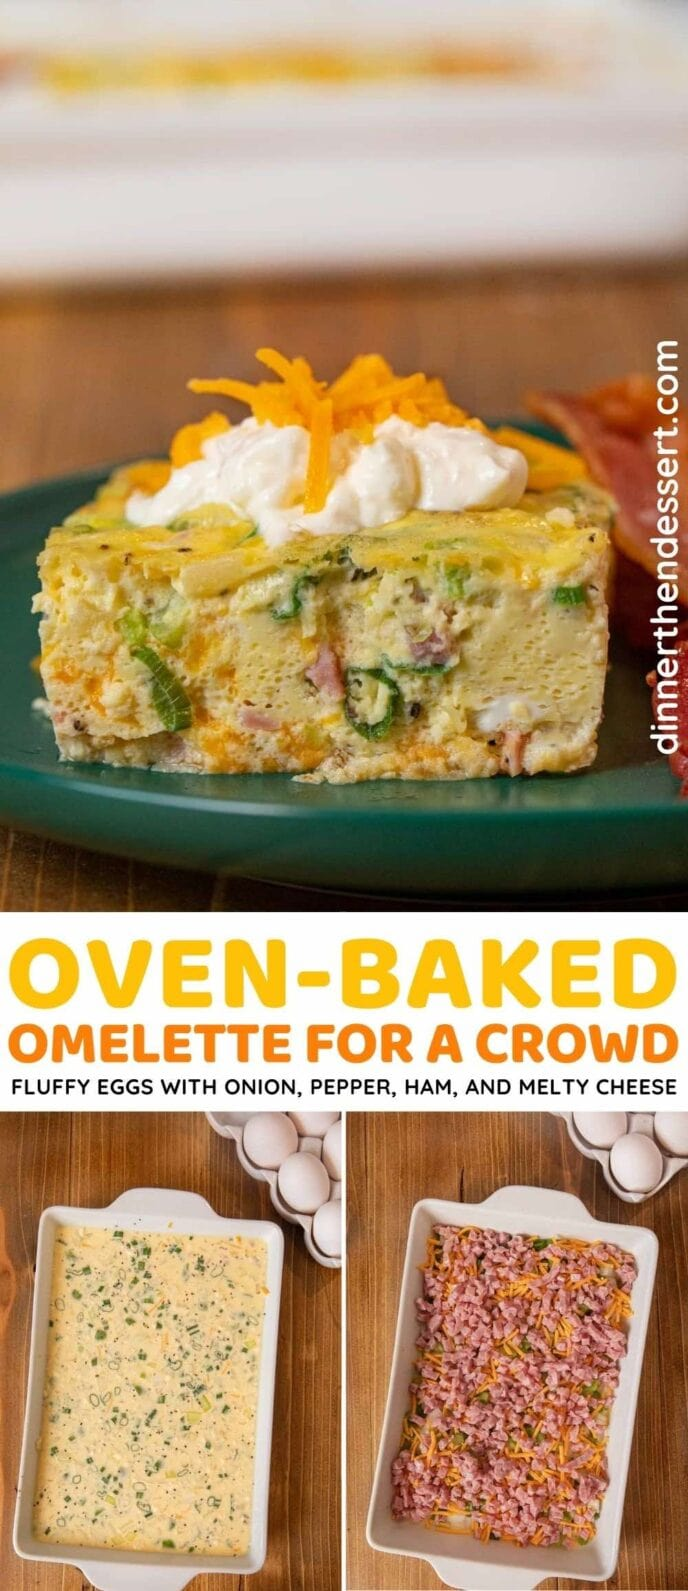 Oven Baked Omelette for a crowd